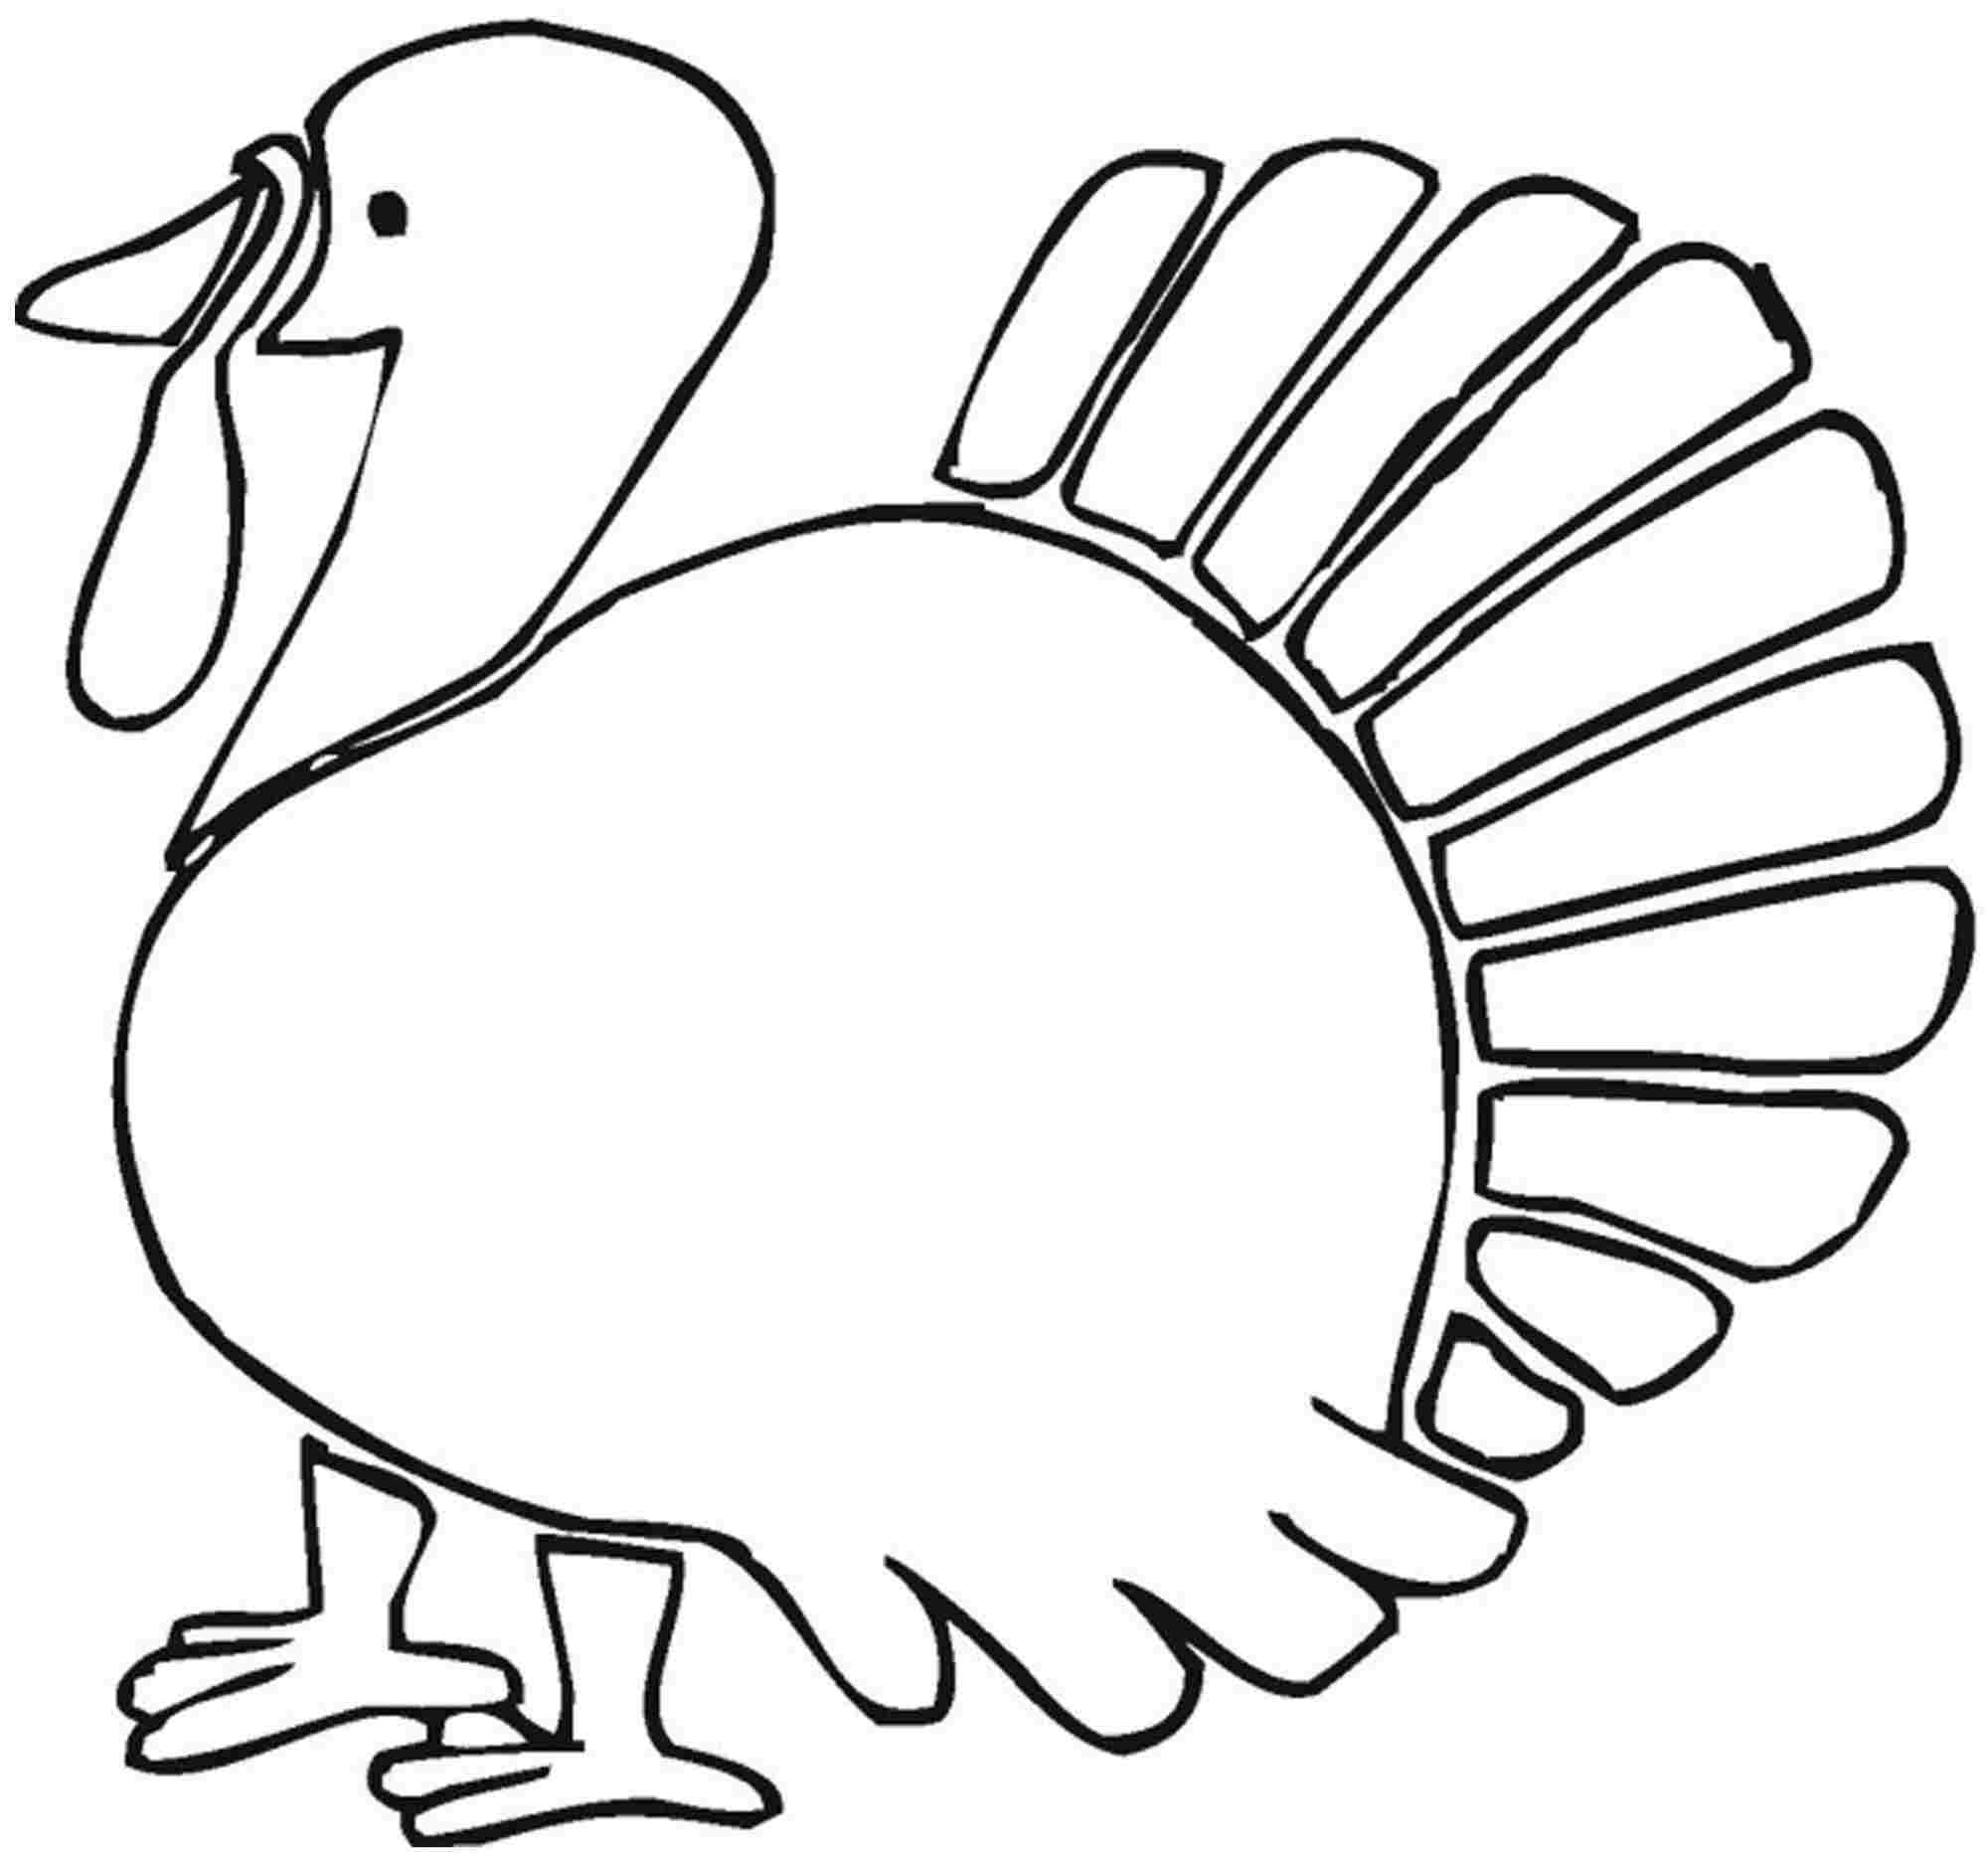 2000x1867 turkey coloring pages for preschoolers - Picture Of A Turkey To Color